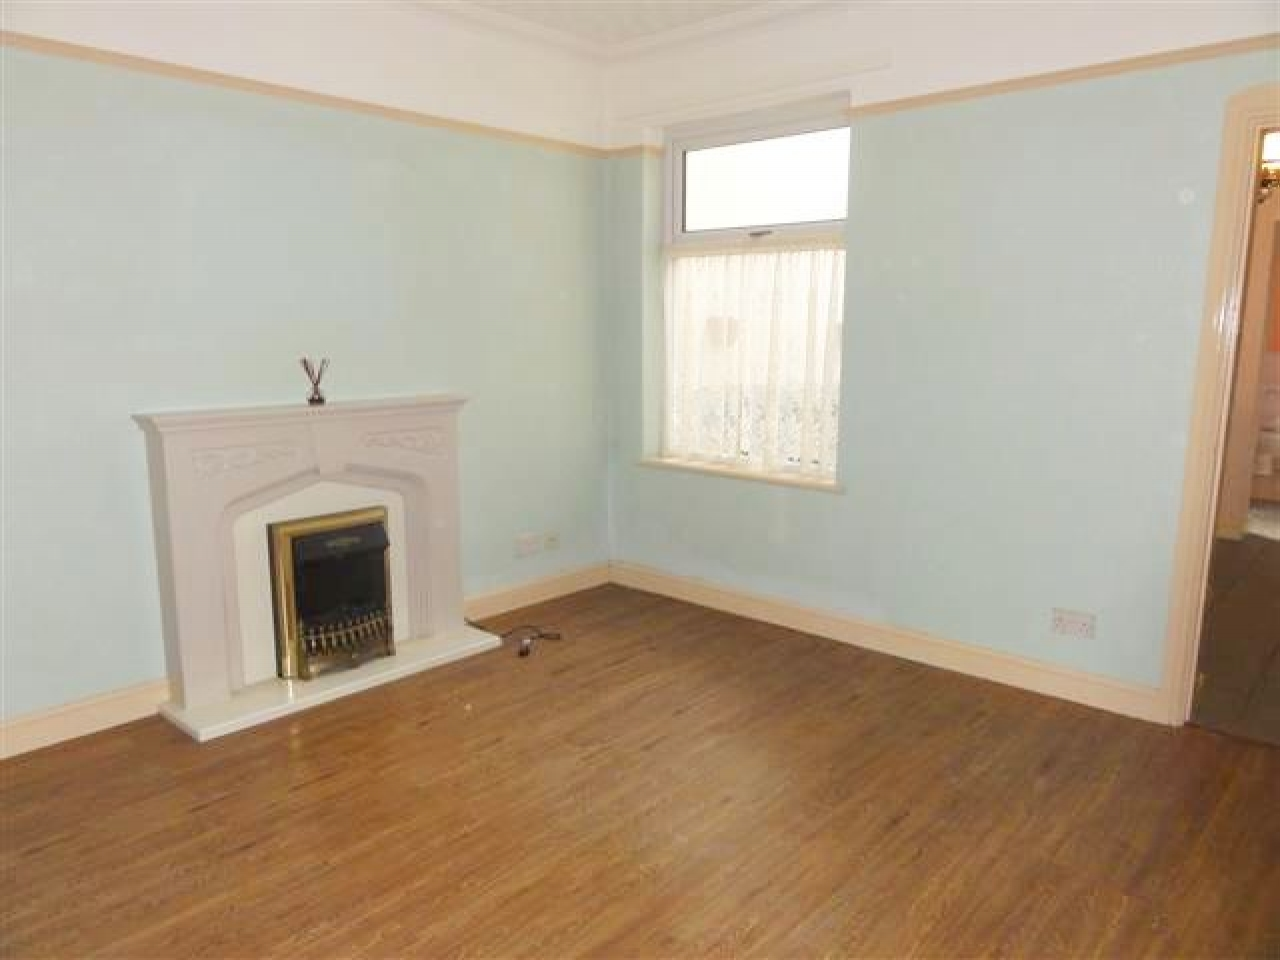 3 Bed End Terraced House To Rent - Photograph 2